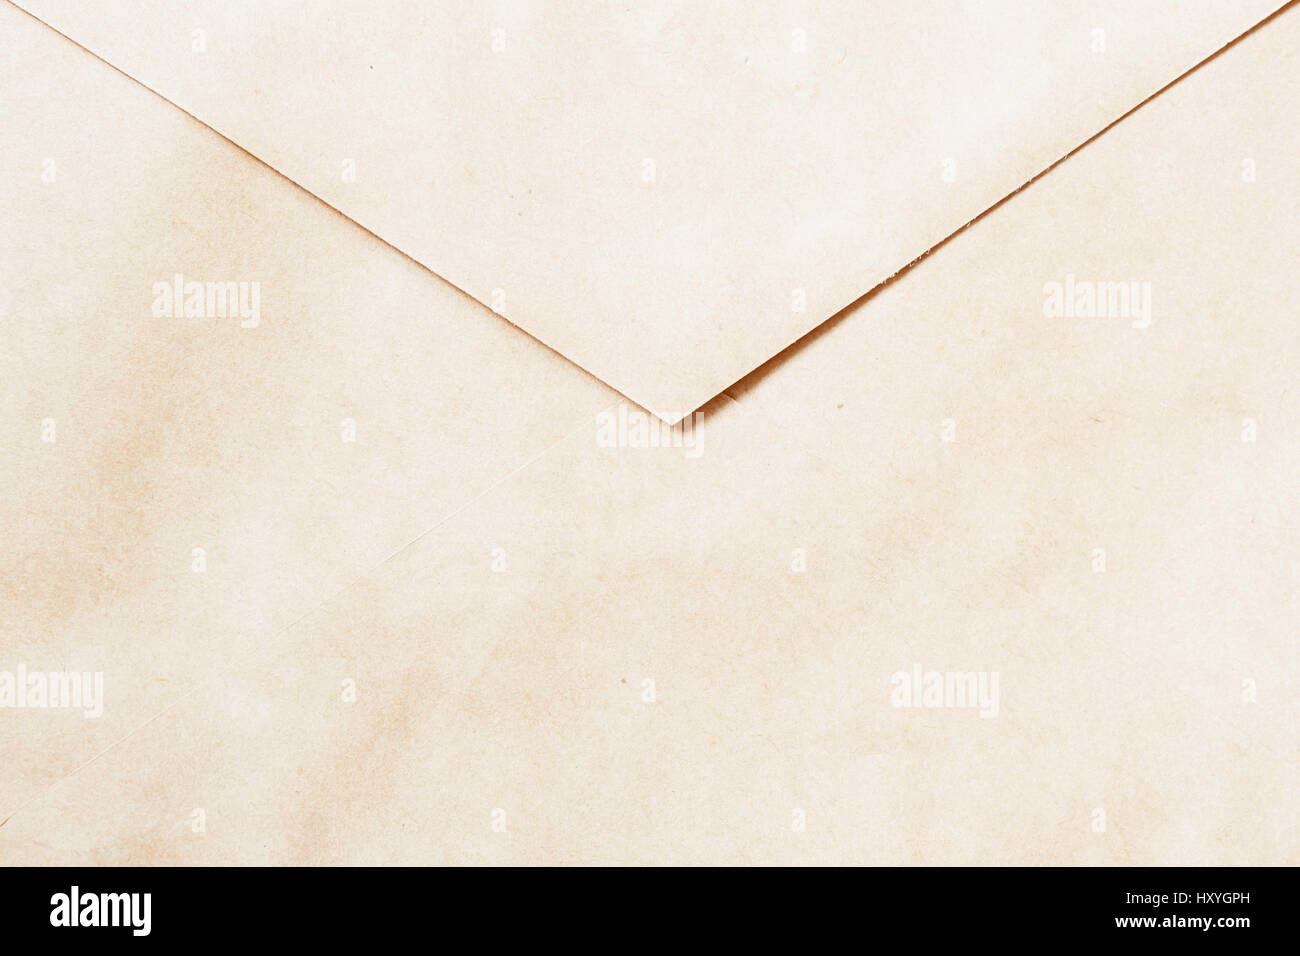 Texture of Vintage paper envelope, back side. Top view. Background , backdrop, substrate, composition use for design. - Stock Image